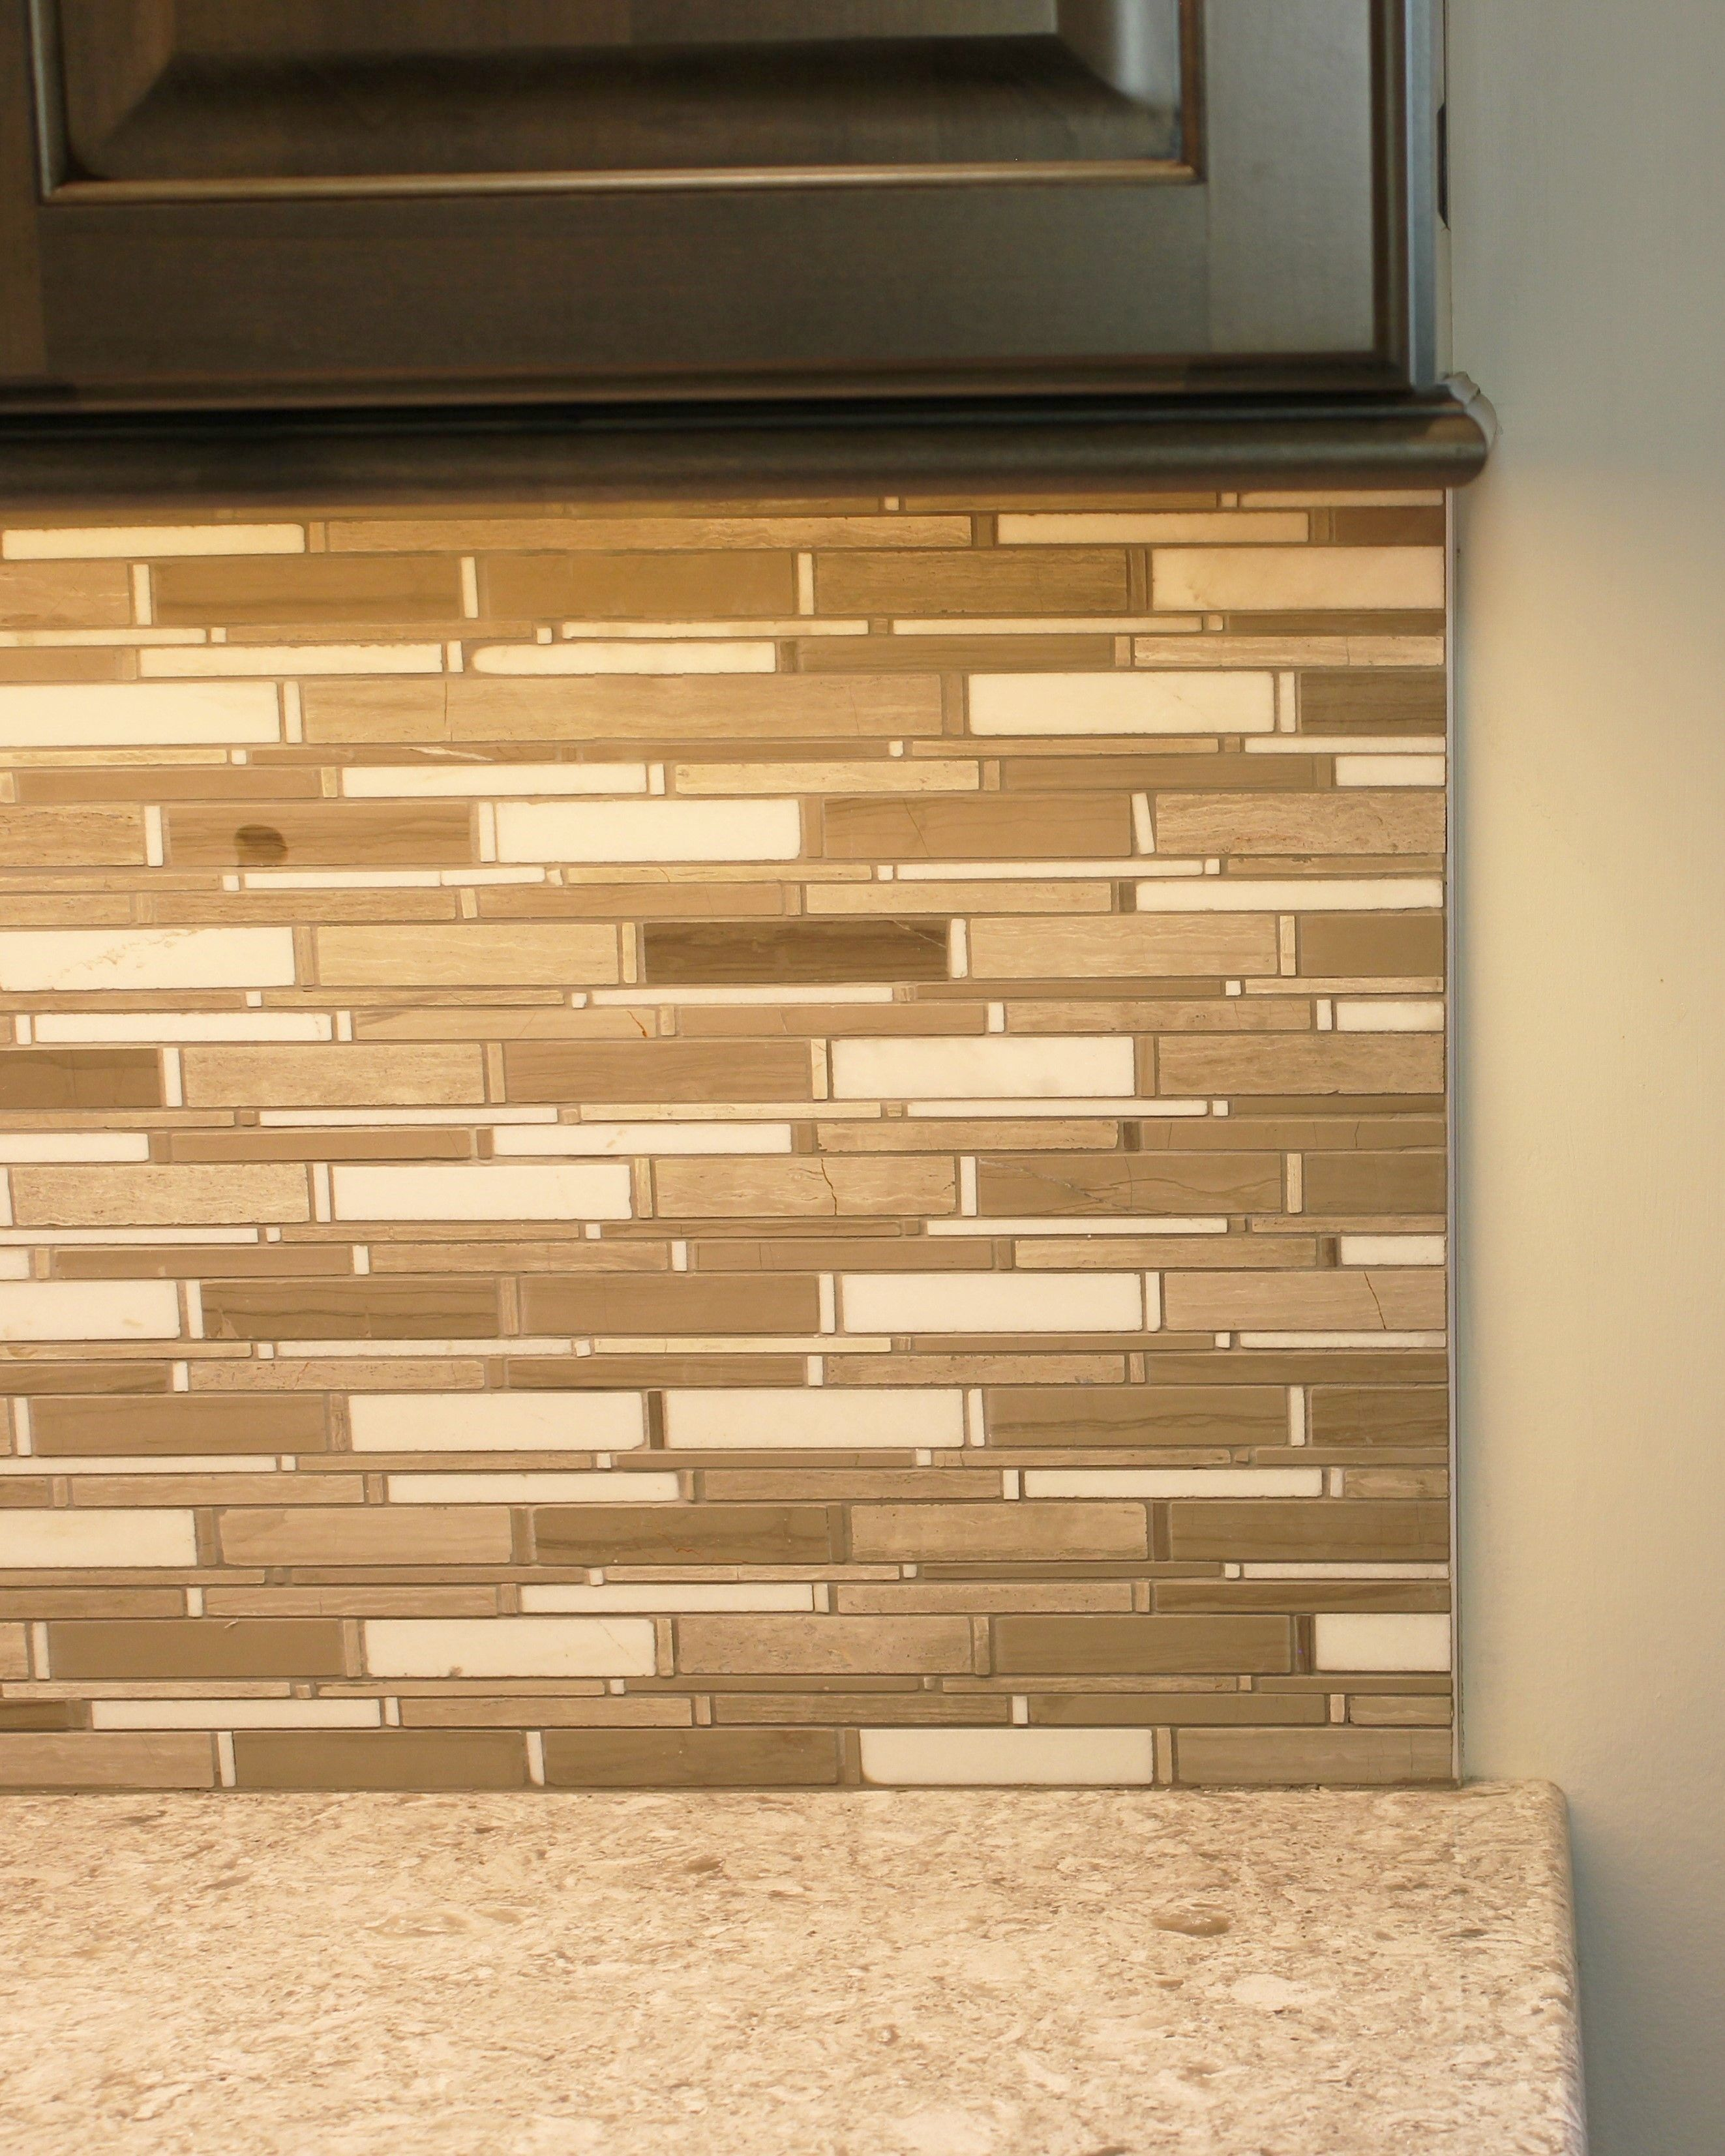 pictures of ends of glass tile backsplashes | Like many newer ...